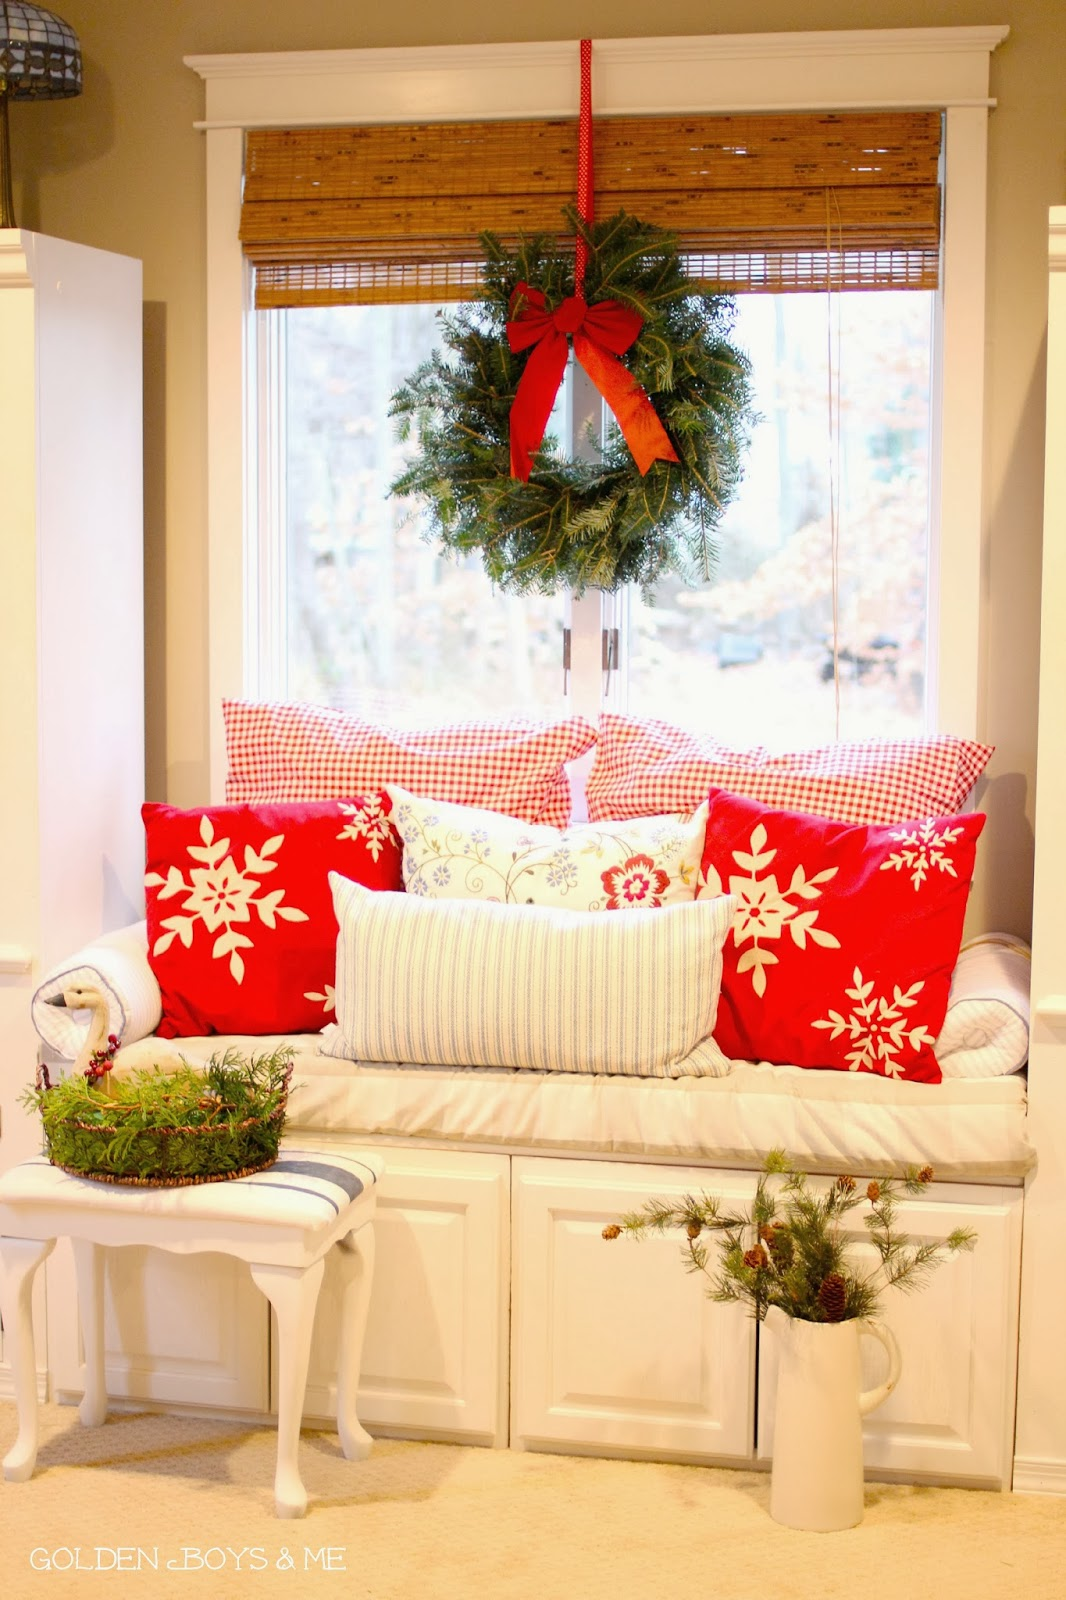 Master Bedroom Decorating Ideas On A Budget: Golden Boys And Me: Christmas Master Bedroom